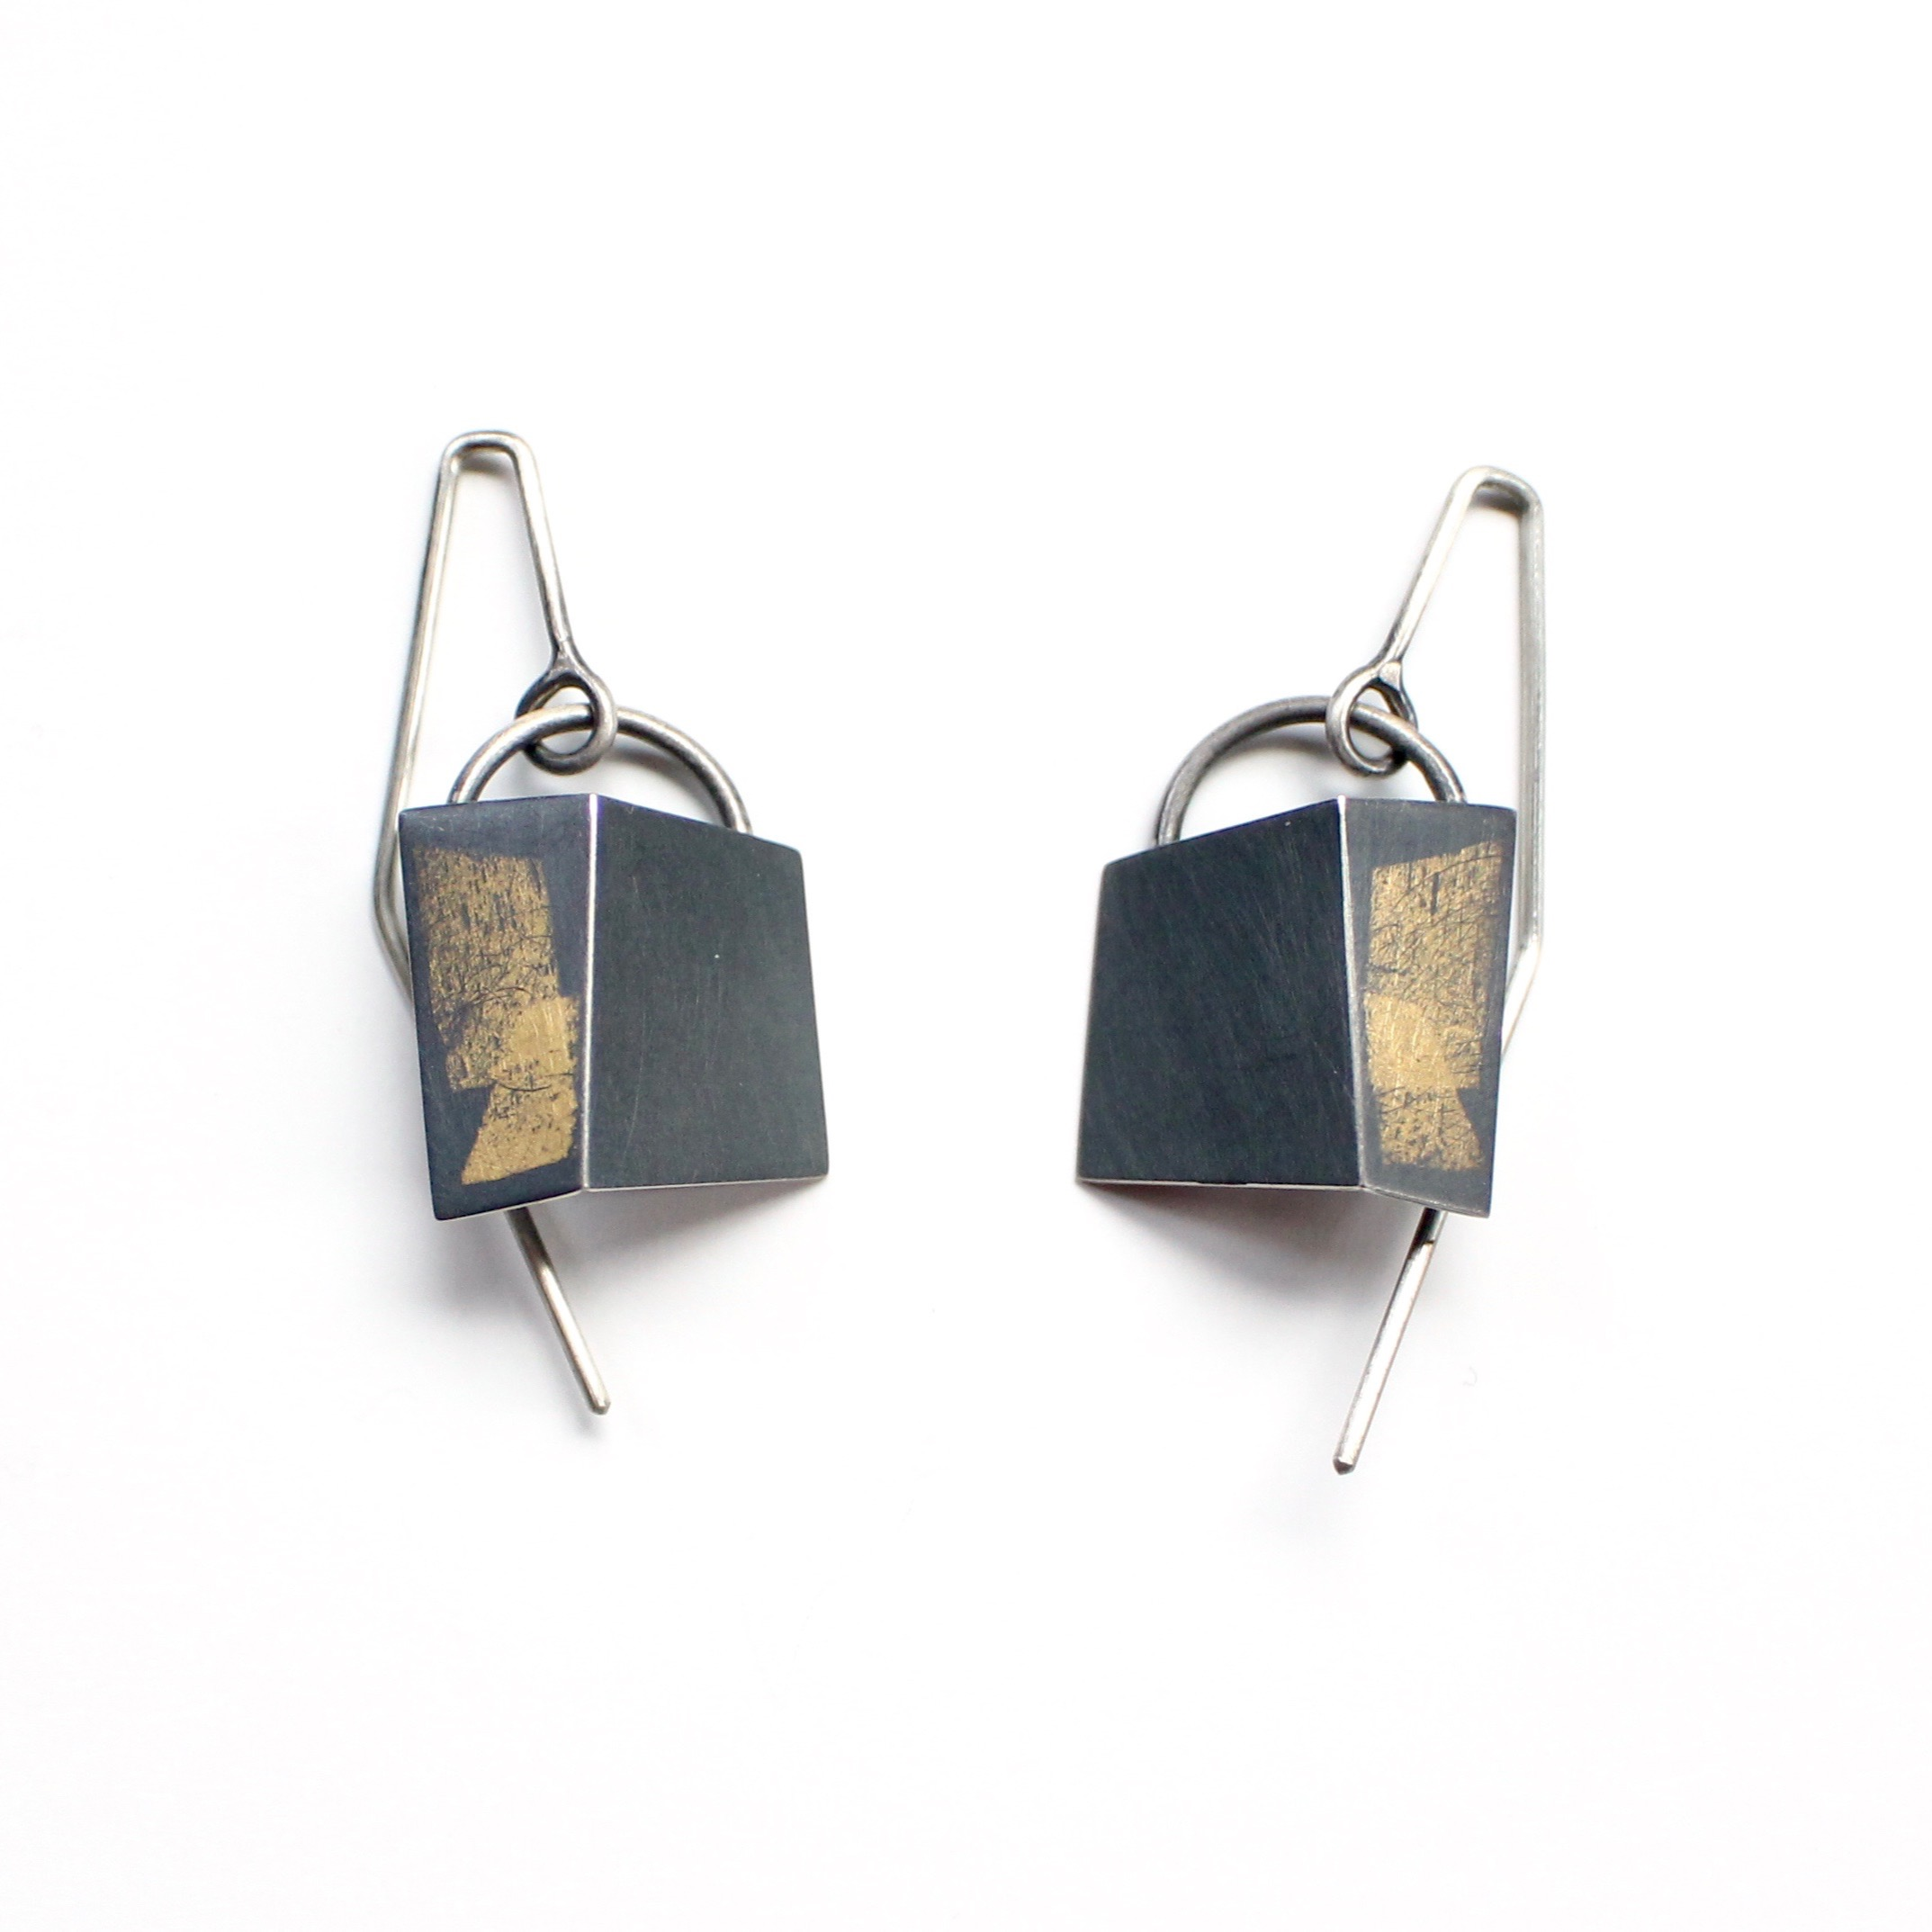 Small Drop-Fold Earrings